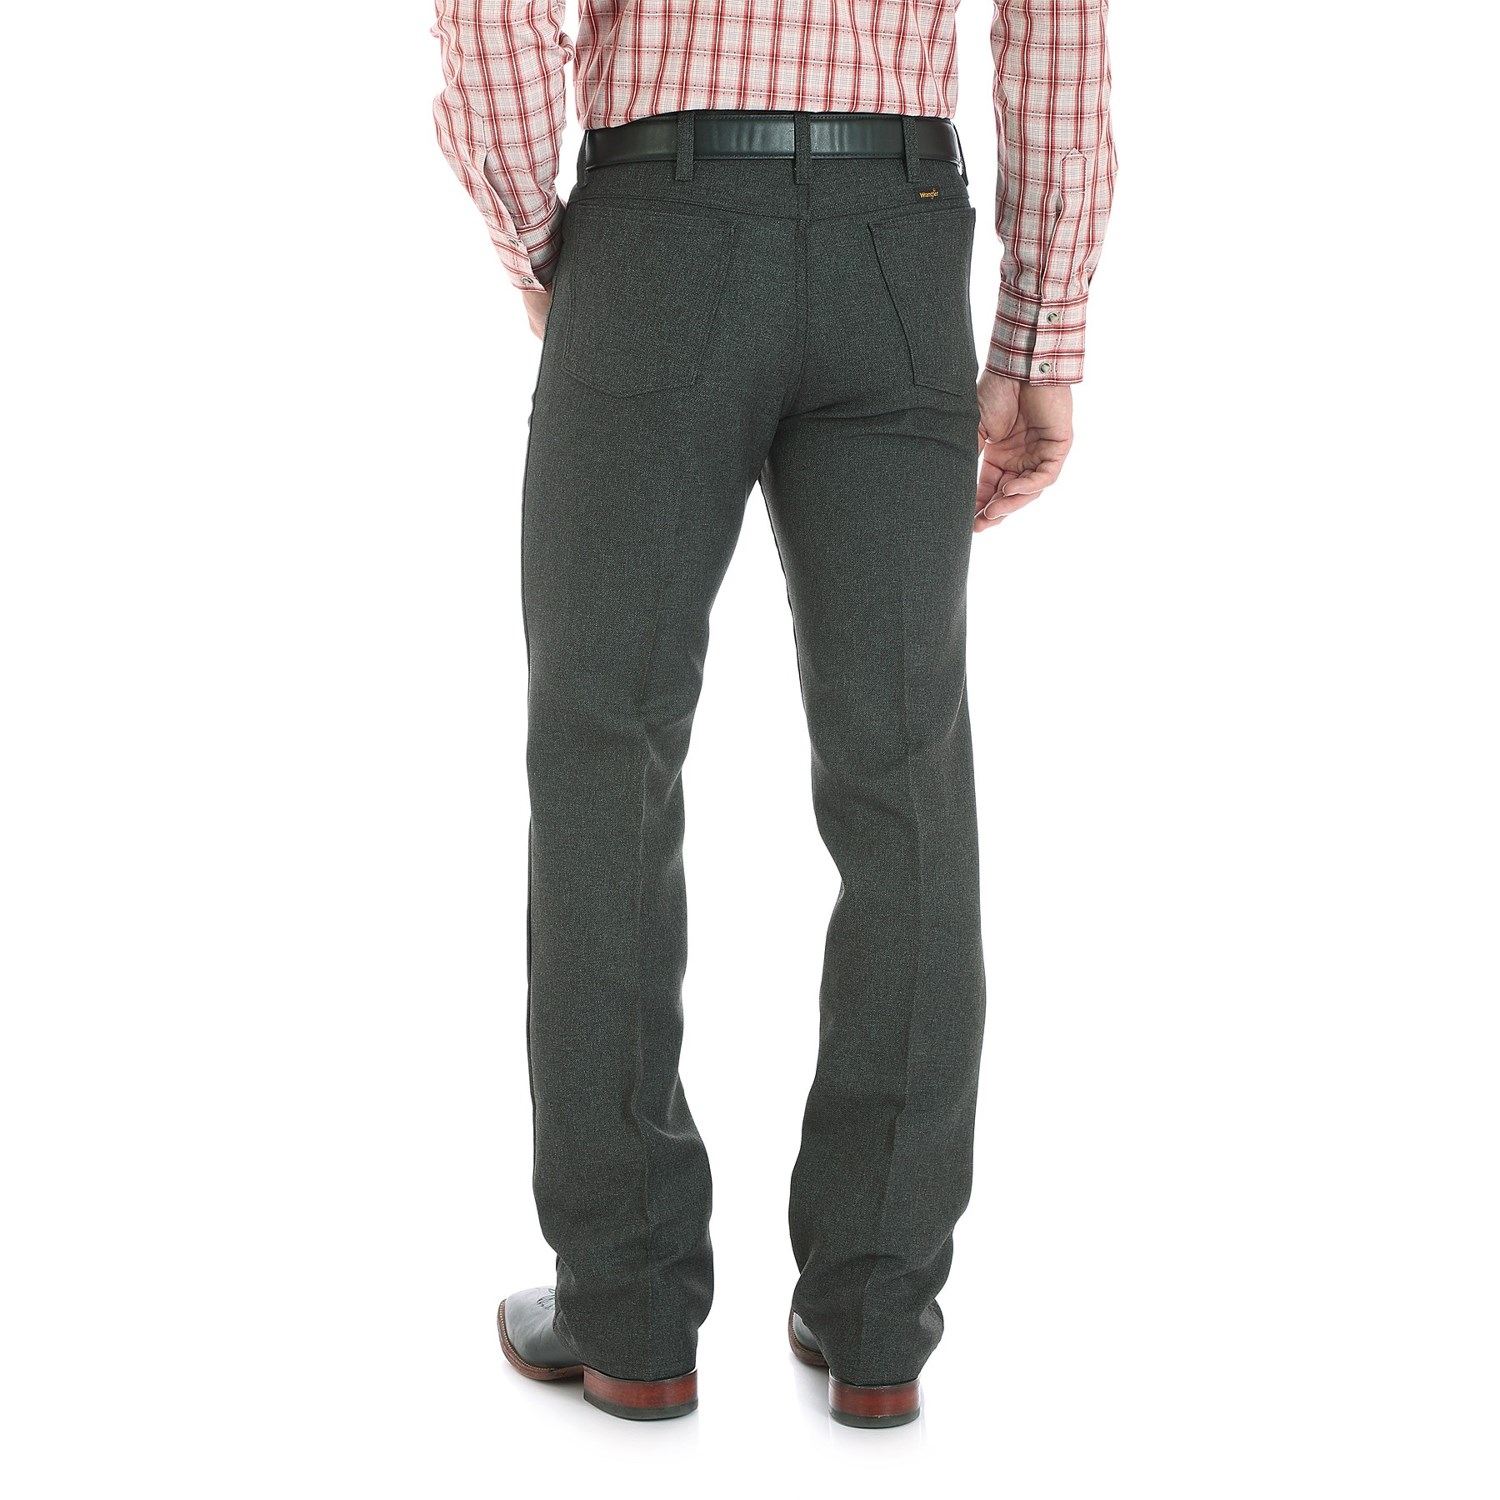 Wrangler Wrancher Dress Jeans (For Men) - Save 42%